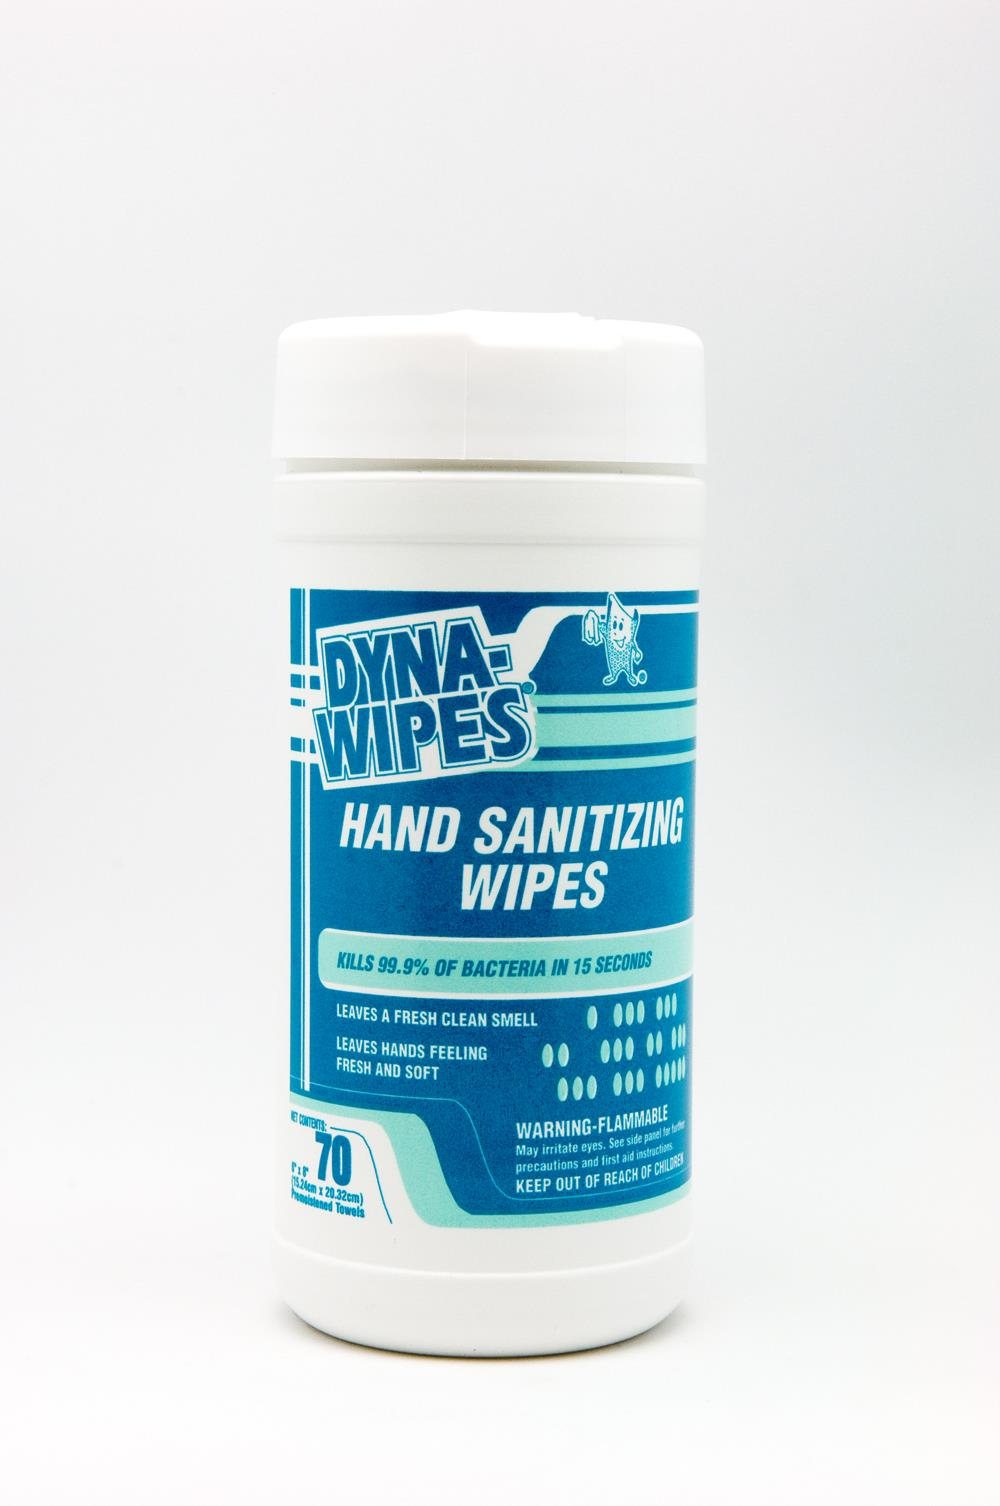 DYNA-WIPES ® HAND SANITIZING WIPES